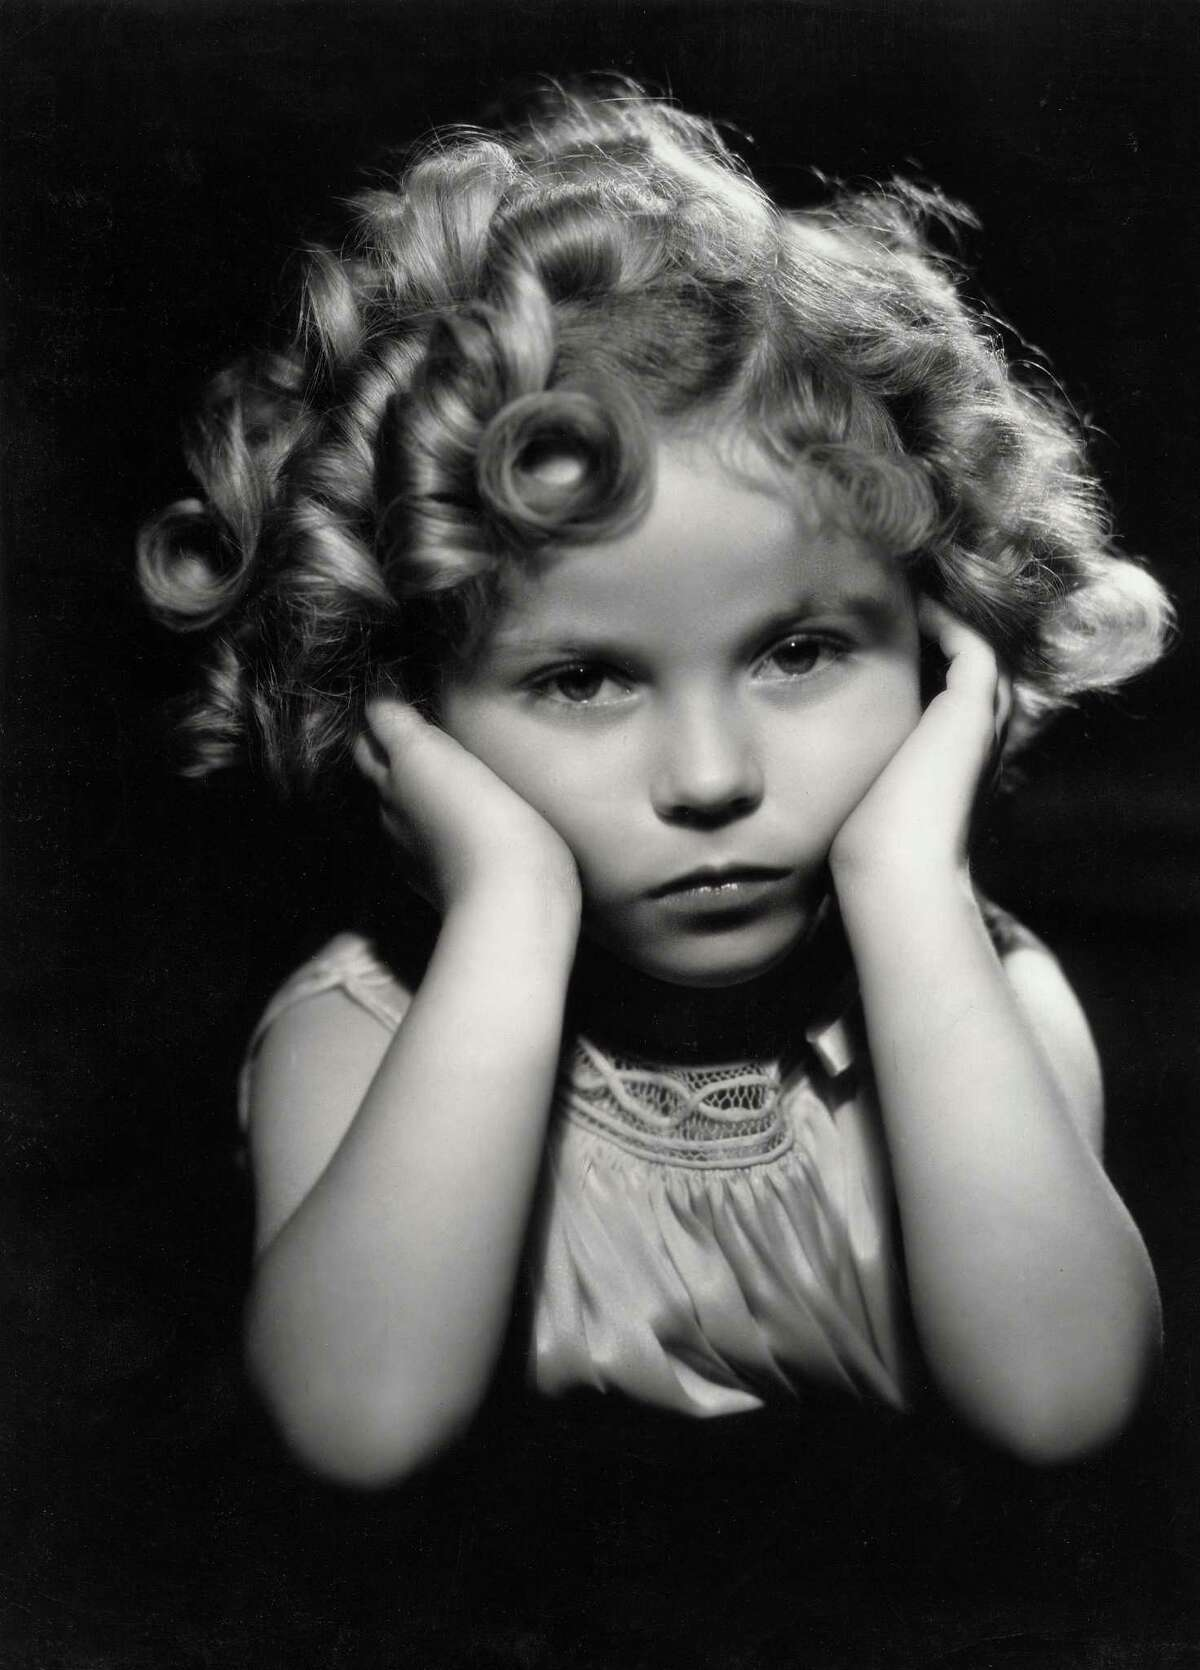 1933: Child actress Shirley Temple in one of her famous poses.